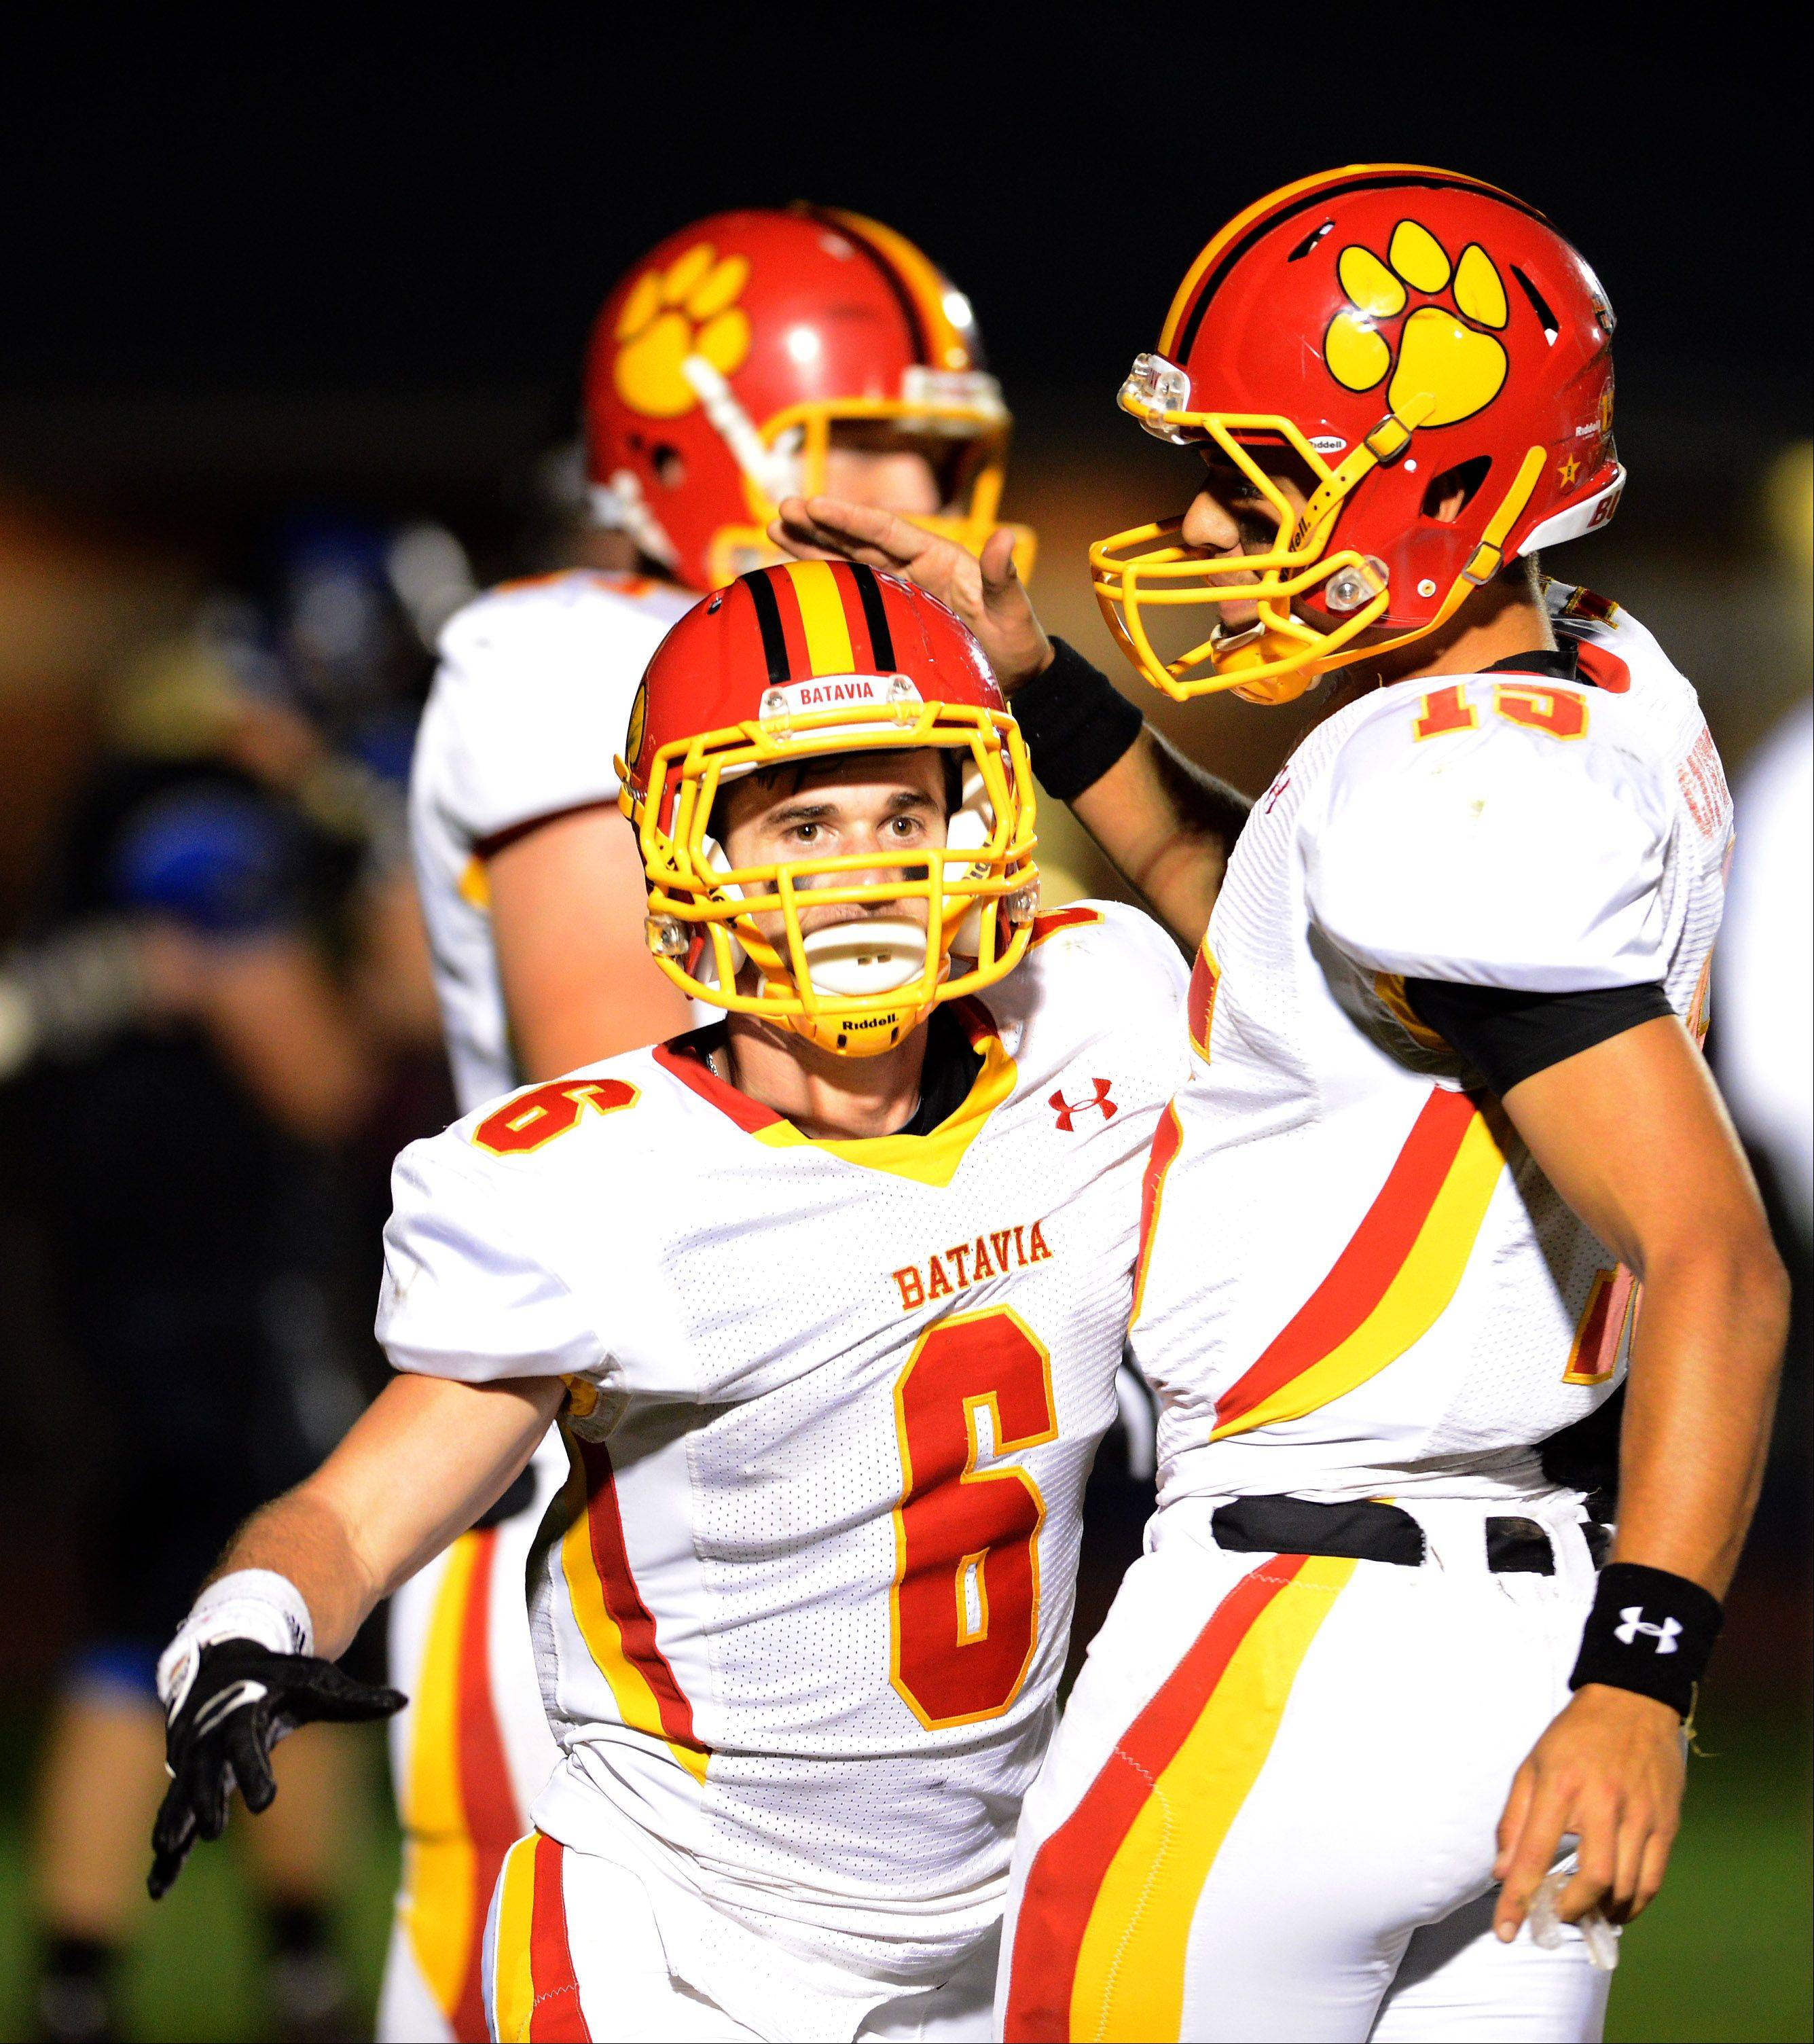 Week 7 � Images from the Batavia vs. St. Charles North football game Friday, October 11, 2013.